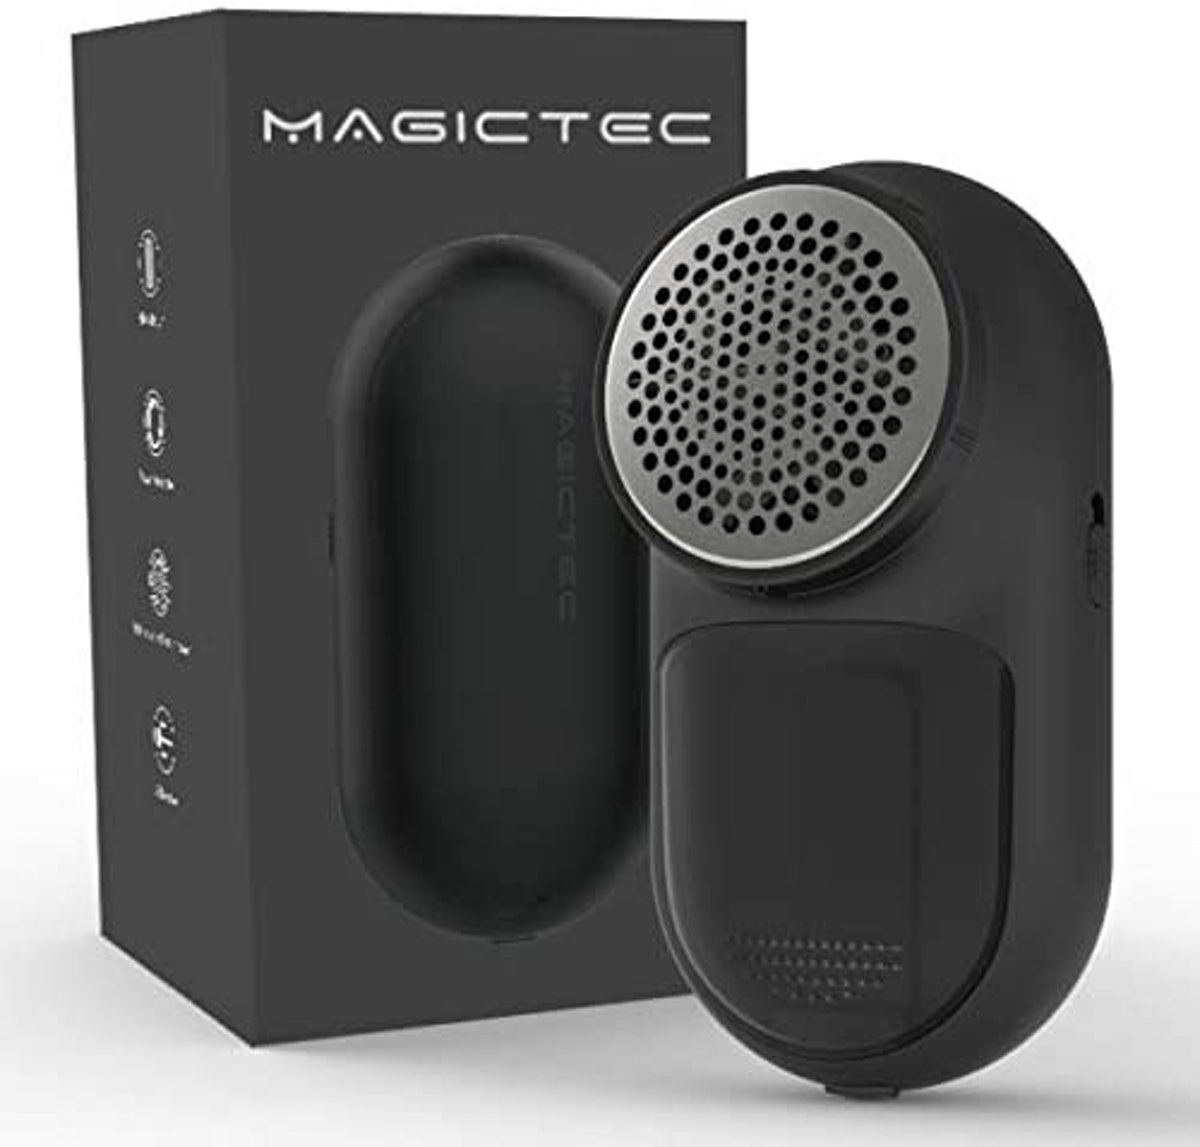 Magictec Rechargeable Fabric Shaver